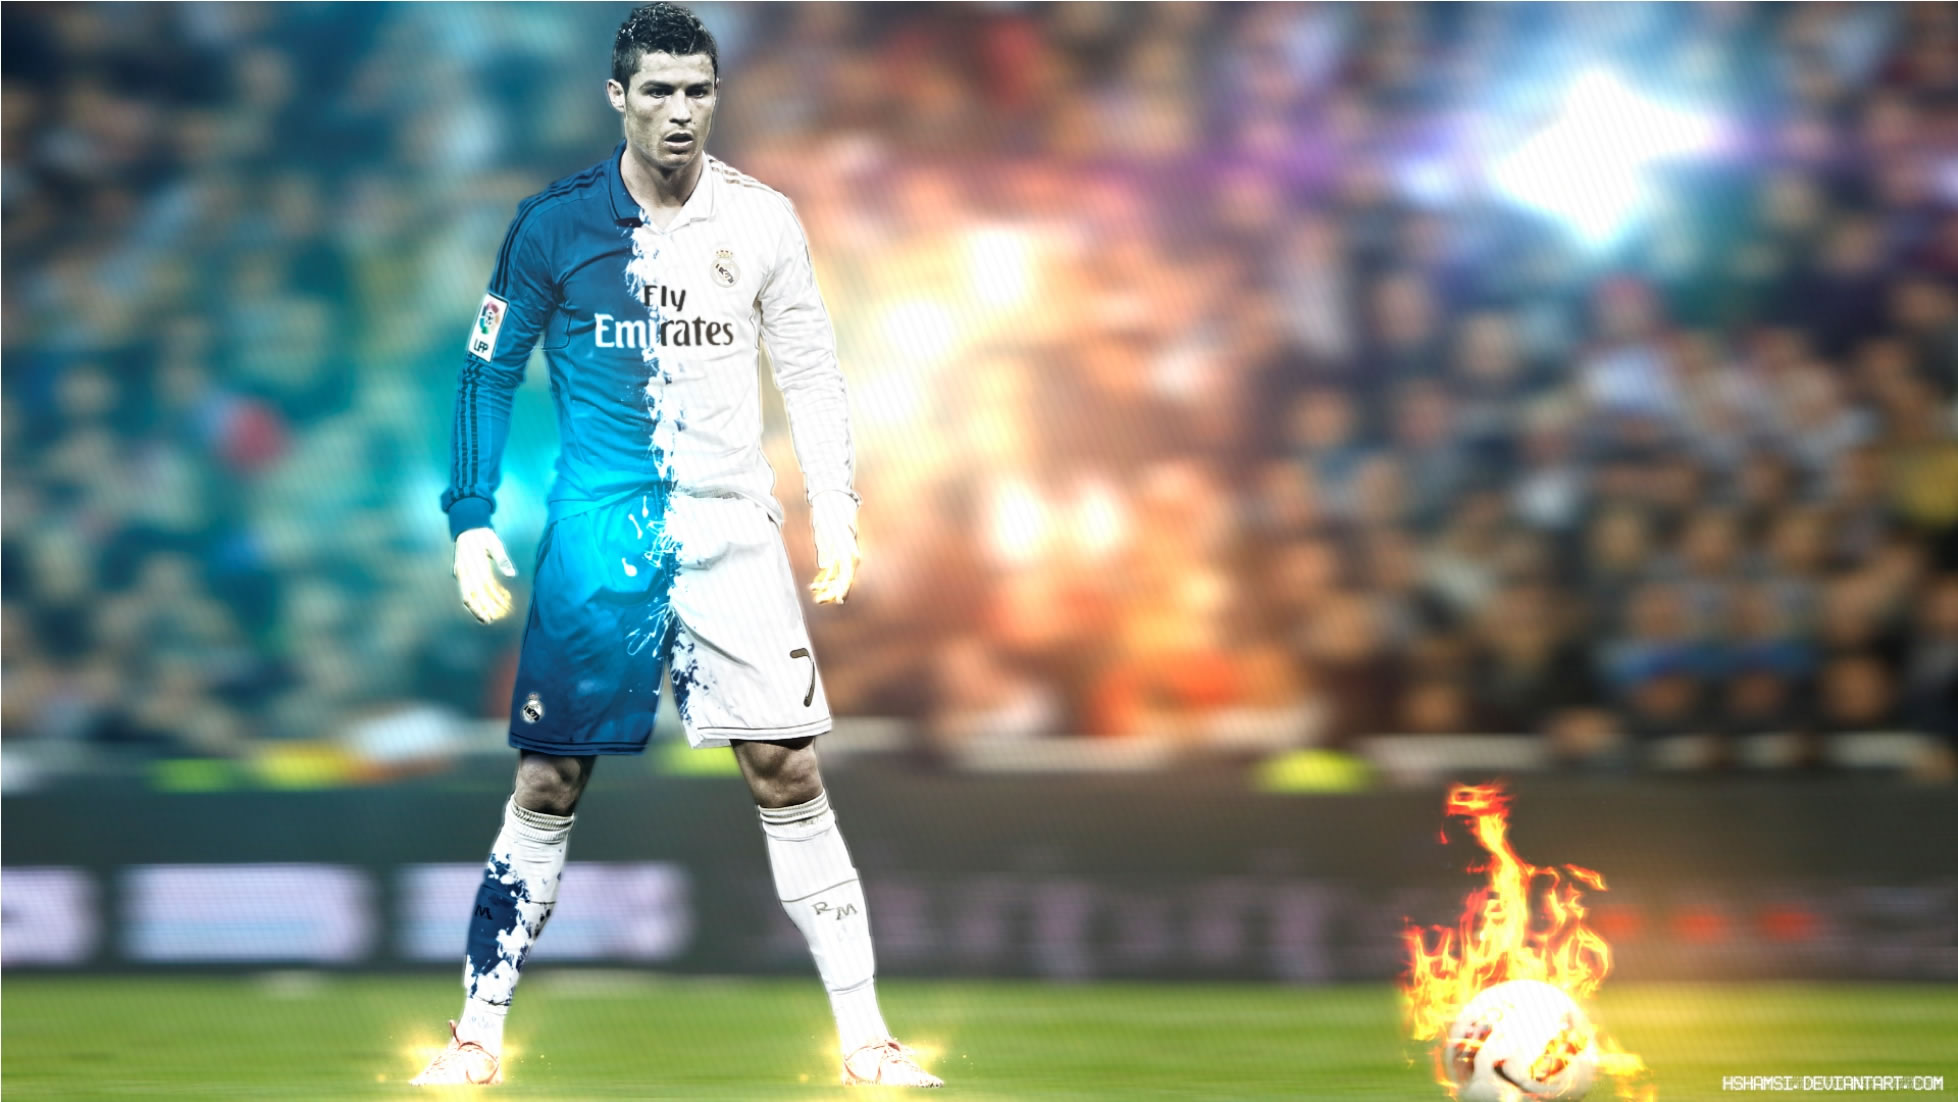 Ronaldo Latest Wallpapers